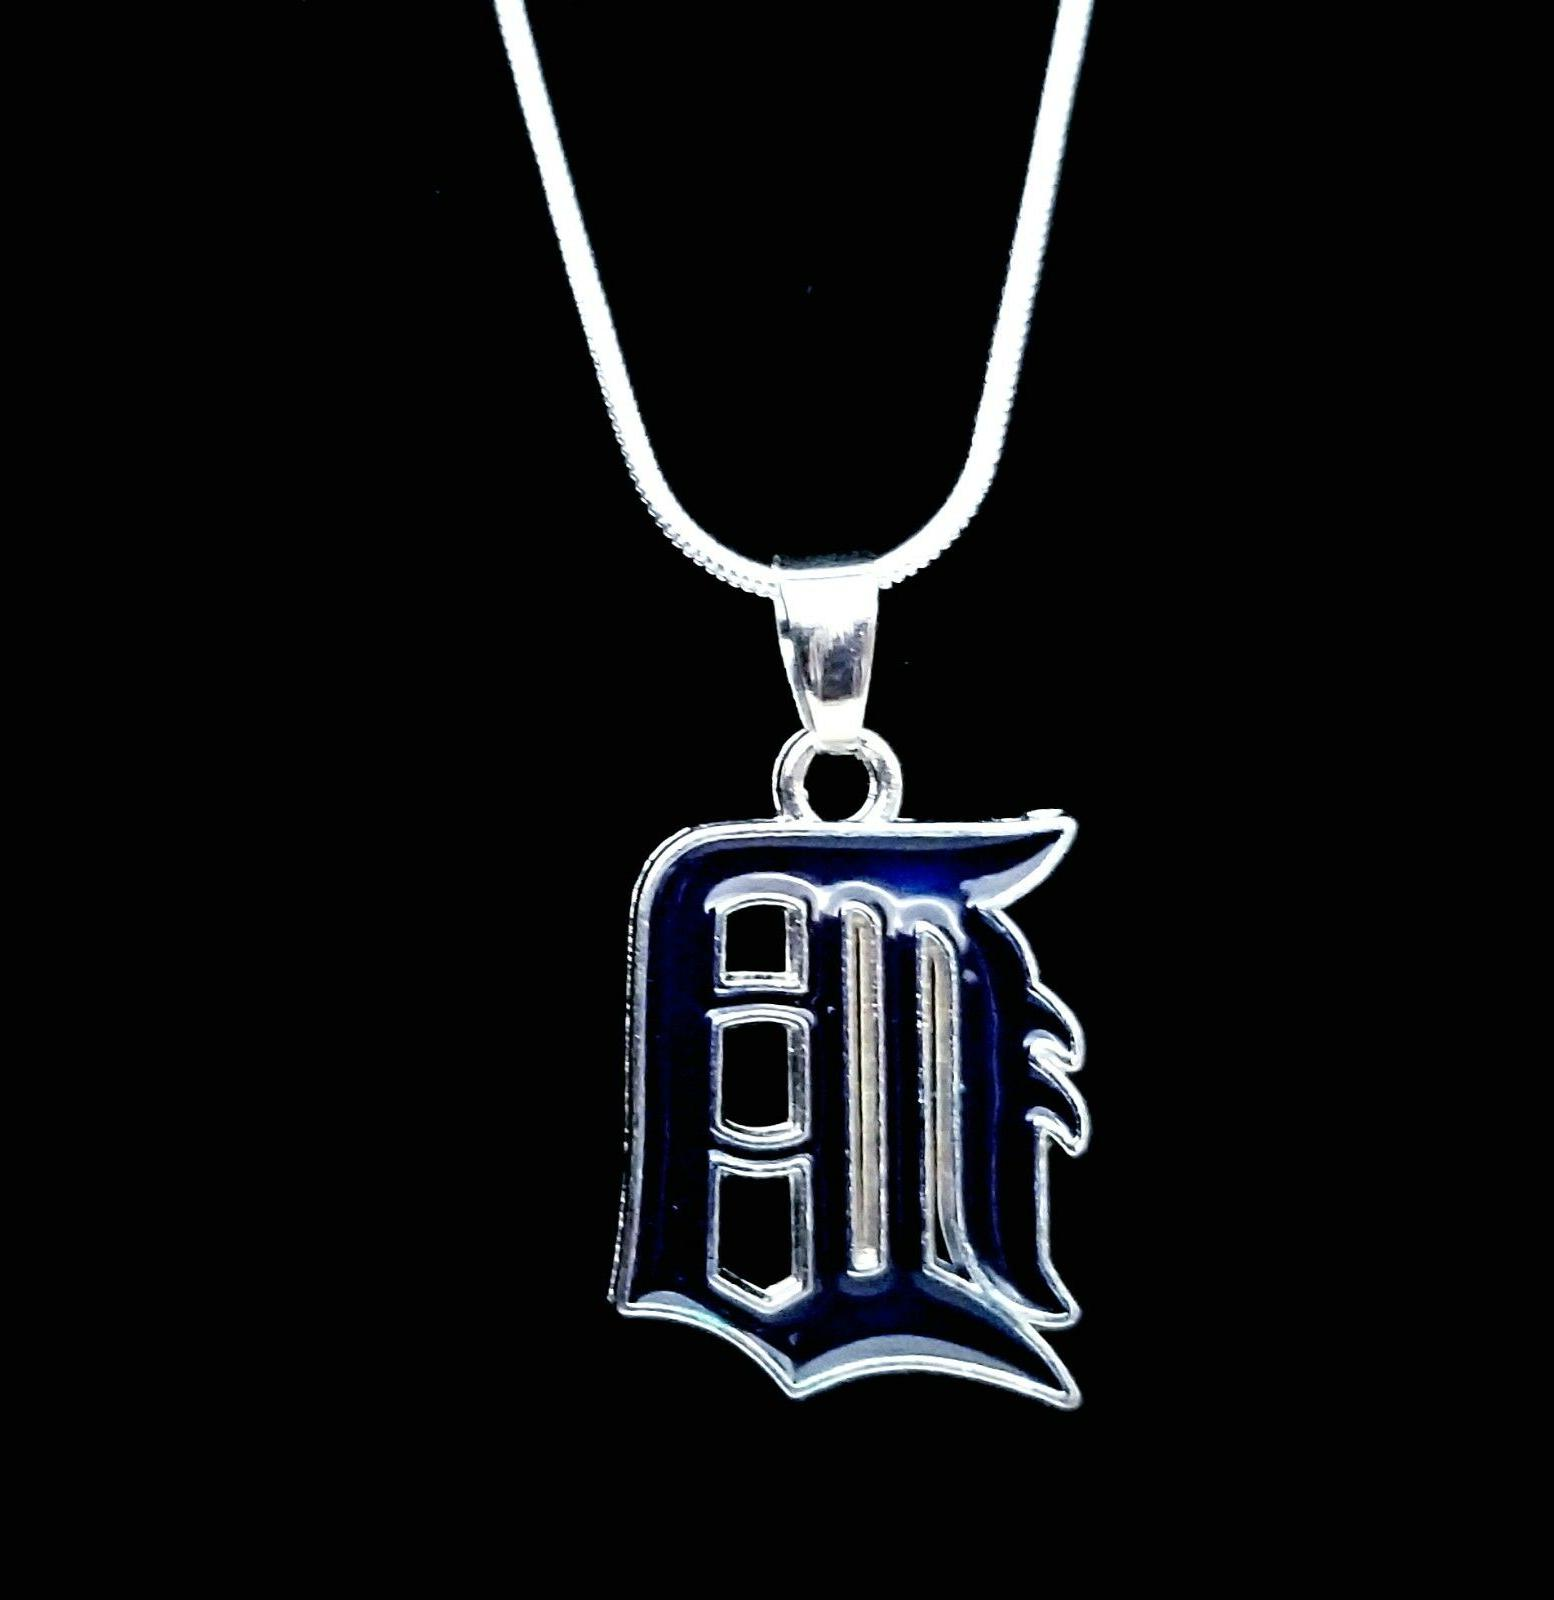 detroit tigers silver necklace chain mlb team